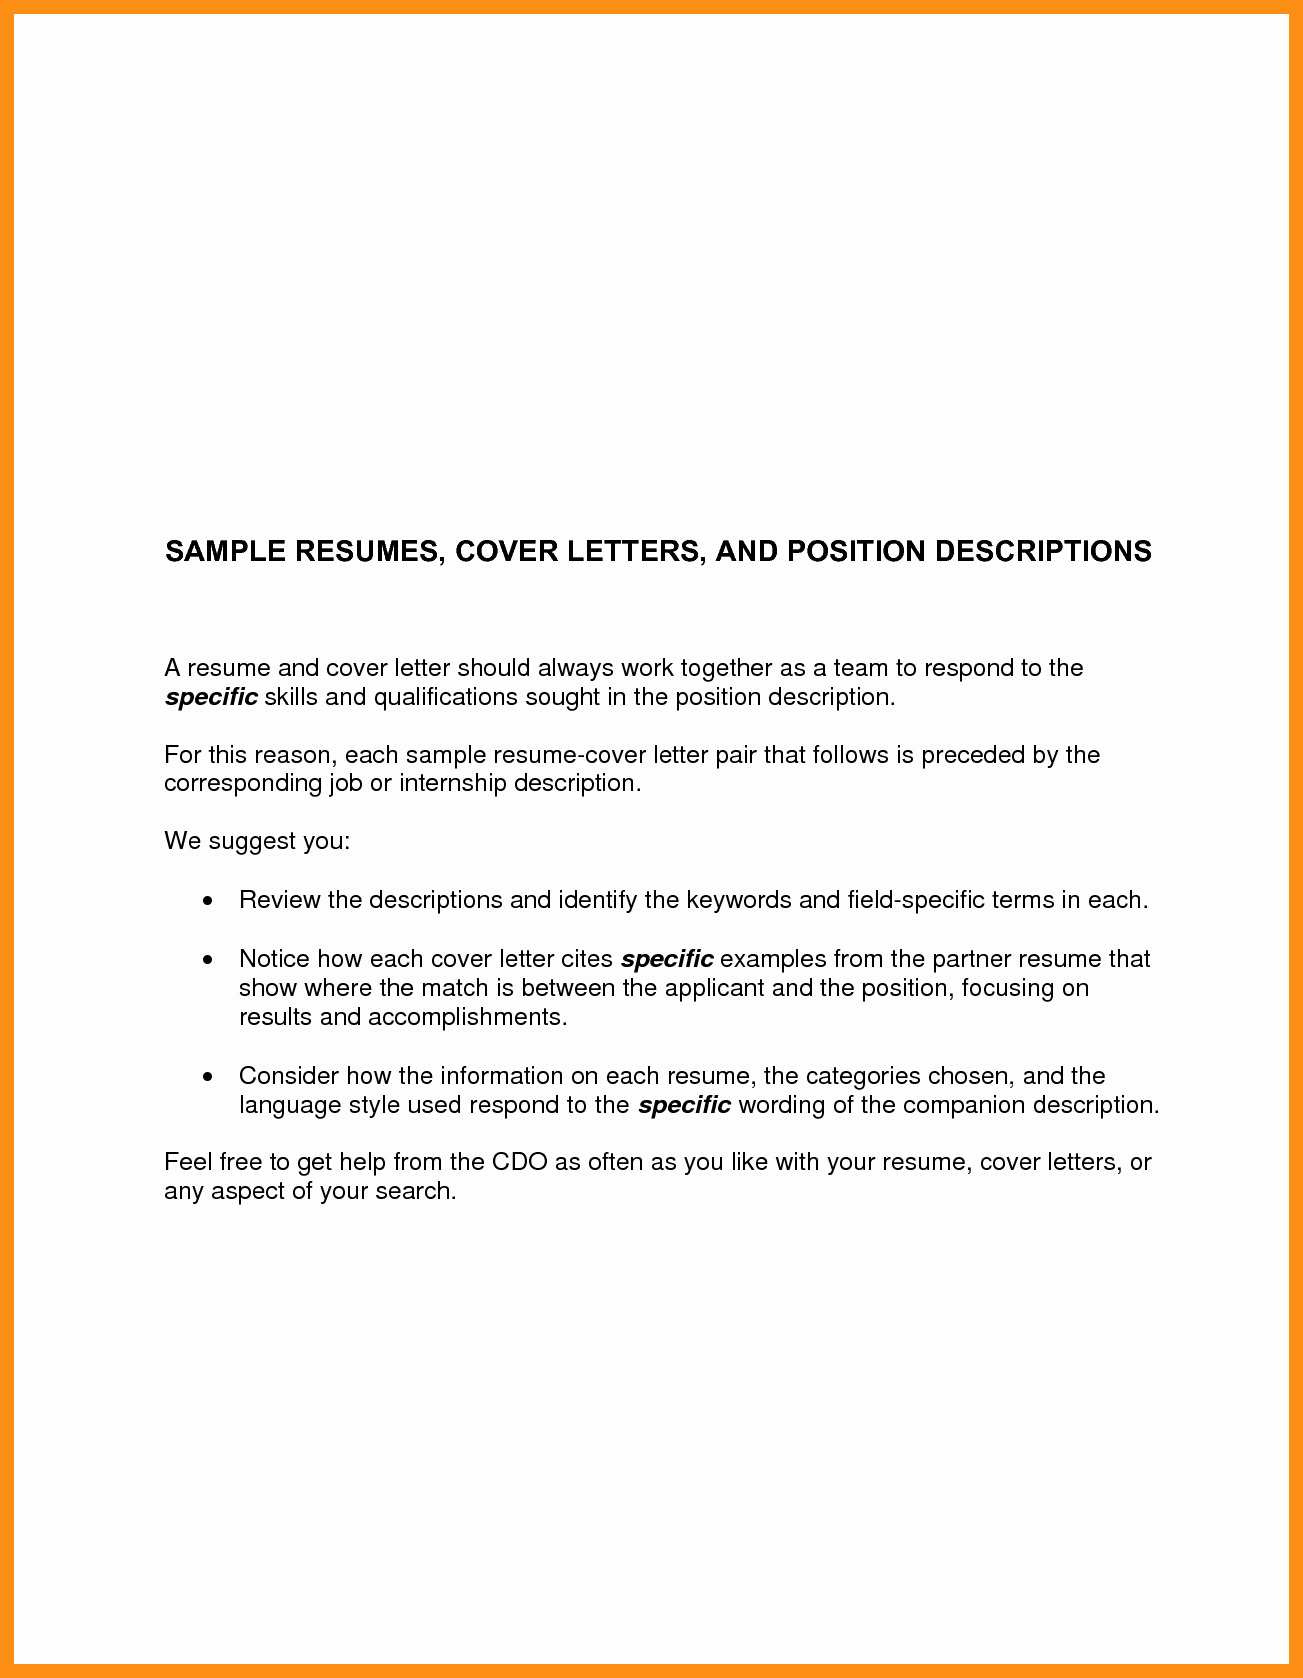 Basic Resume Cover Letter Examples Awesome Basic Cover Letter for Any Job